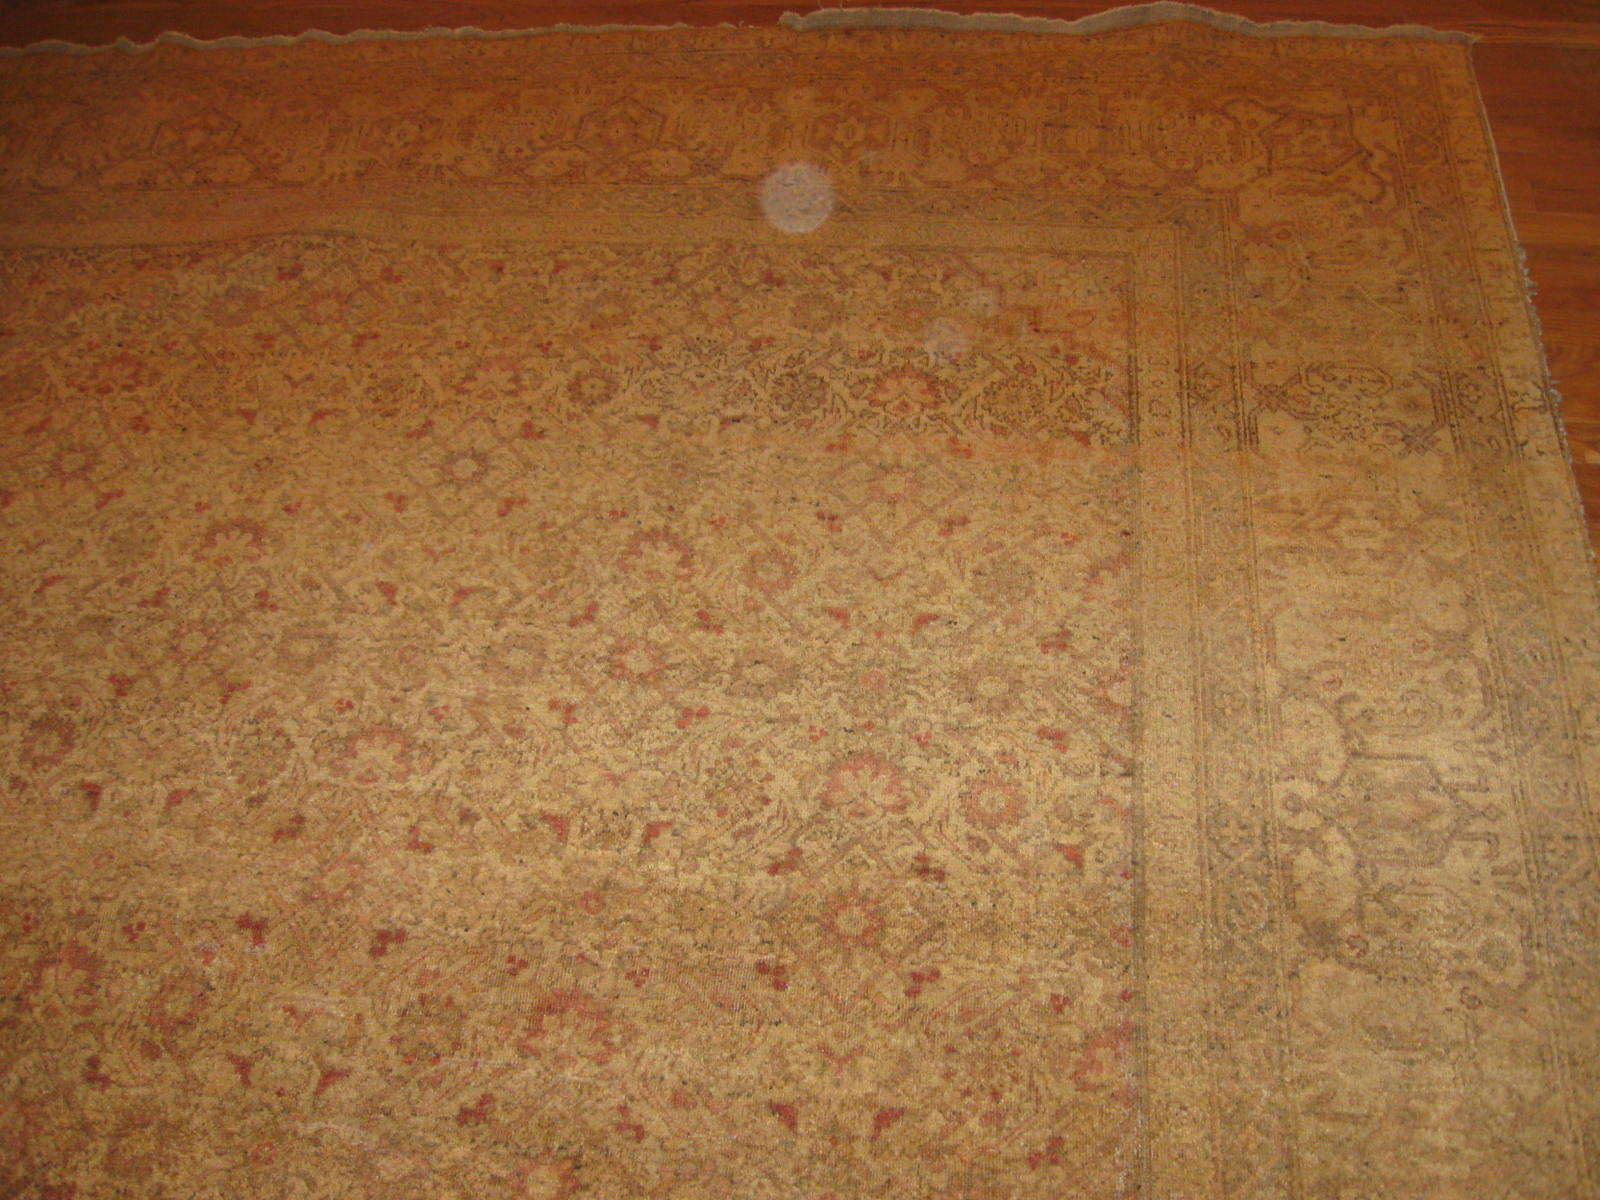 24381 antique India Amritsar carpet 9,2 x 12 -1